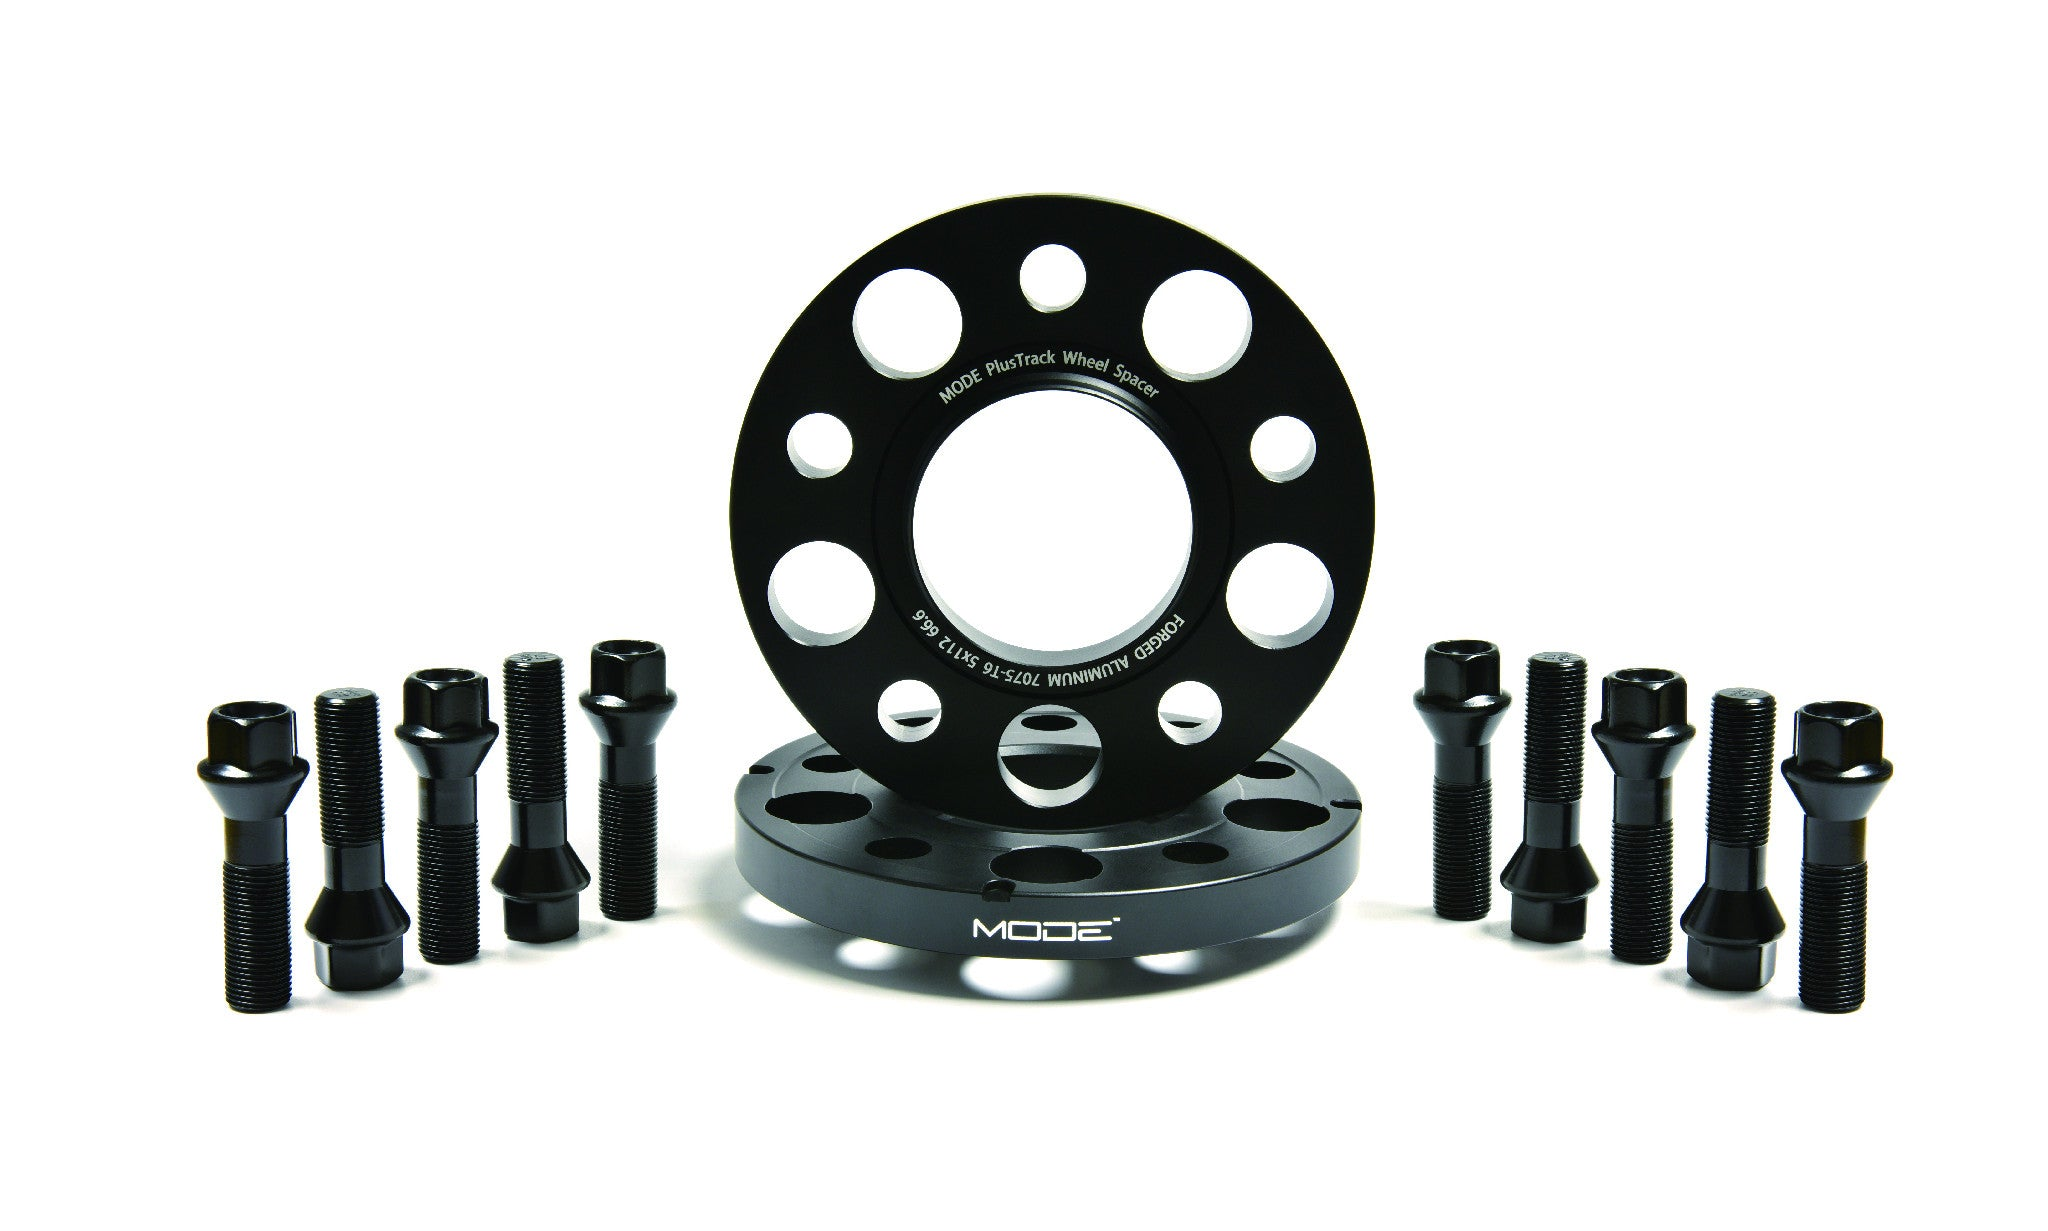 MODE PlusTrack Wheel Spacer Kit 15mm VW & Audi A1/S1/A3/S3/RS3 Q2/Q3/RSQ3 TT/TTS/TTRS - MODE Auto Concepts